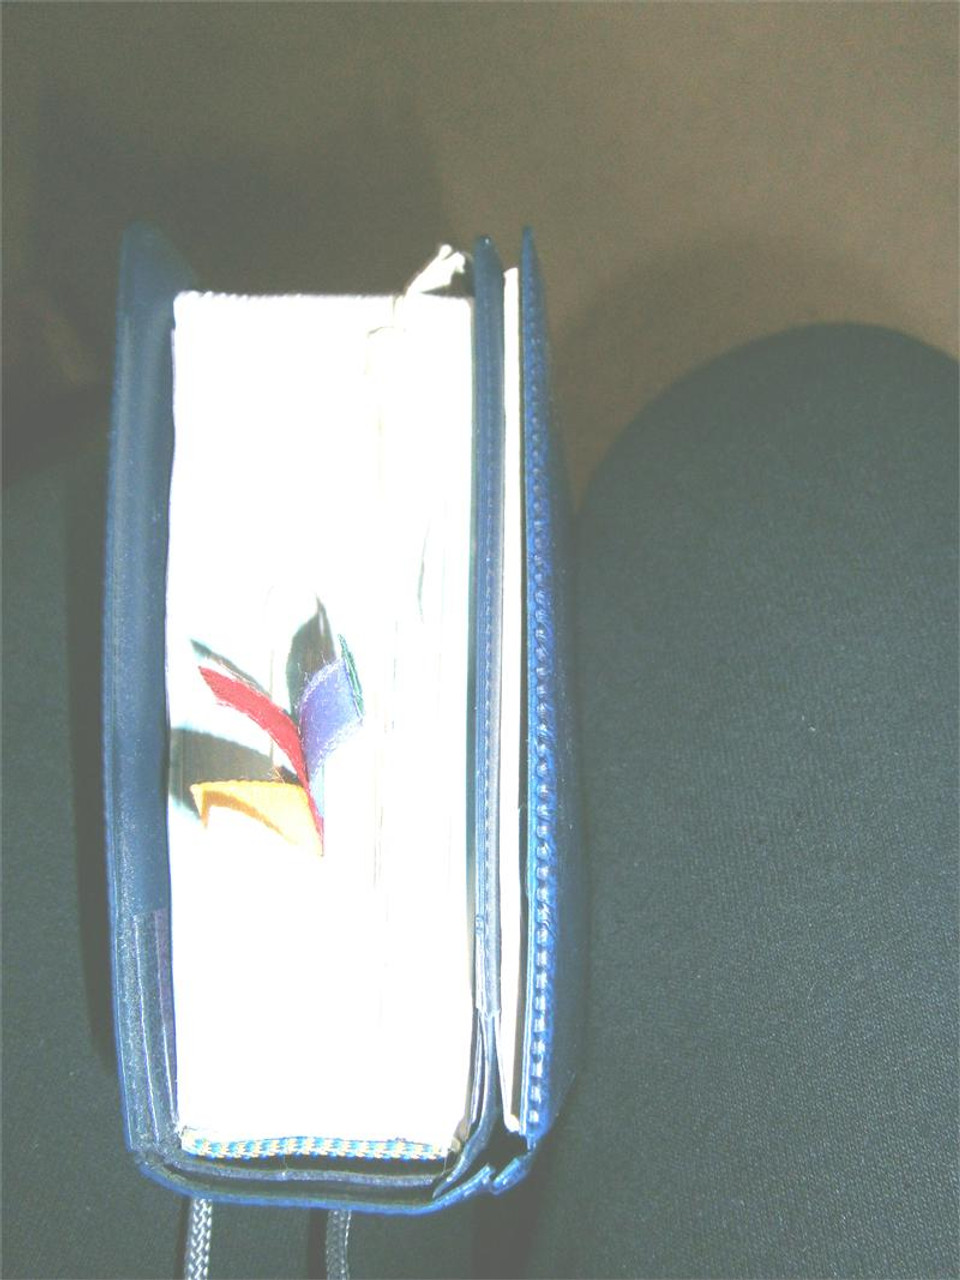 Roman Franciscan Breviary Cover for Christian Prayer, Liturgy of the Hours. Has pocket for Franciscan or Other Order Supplement